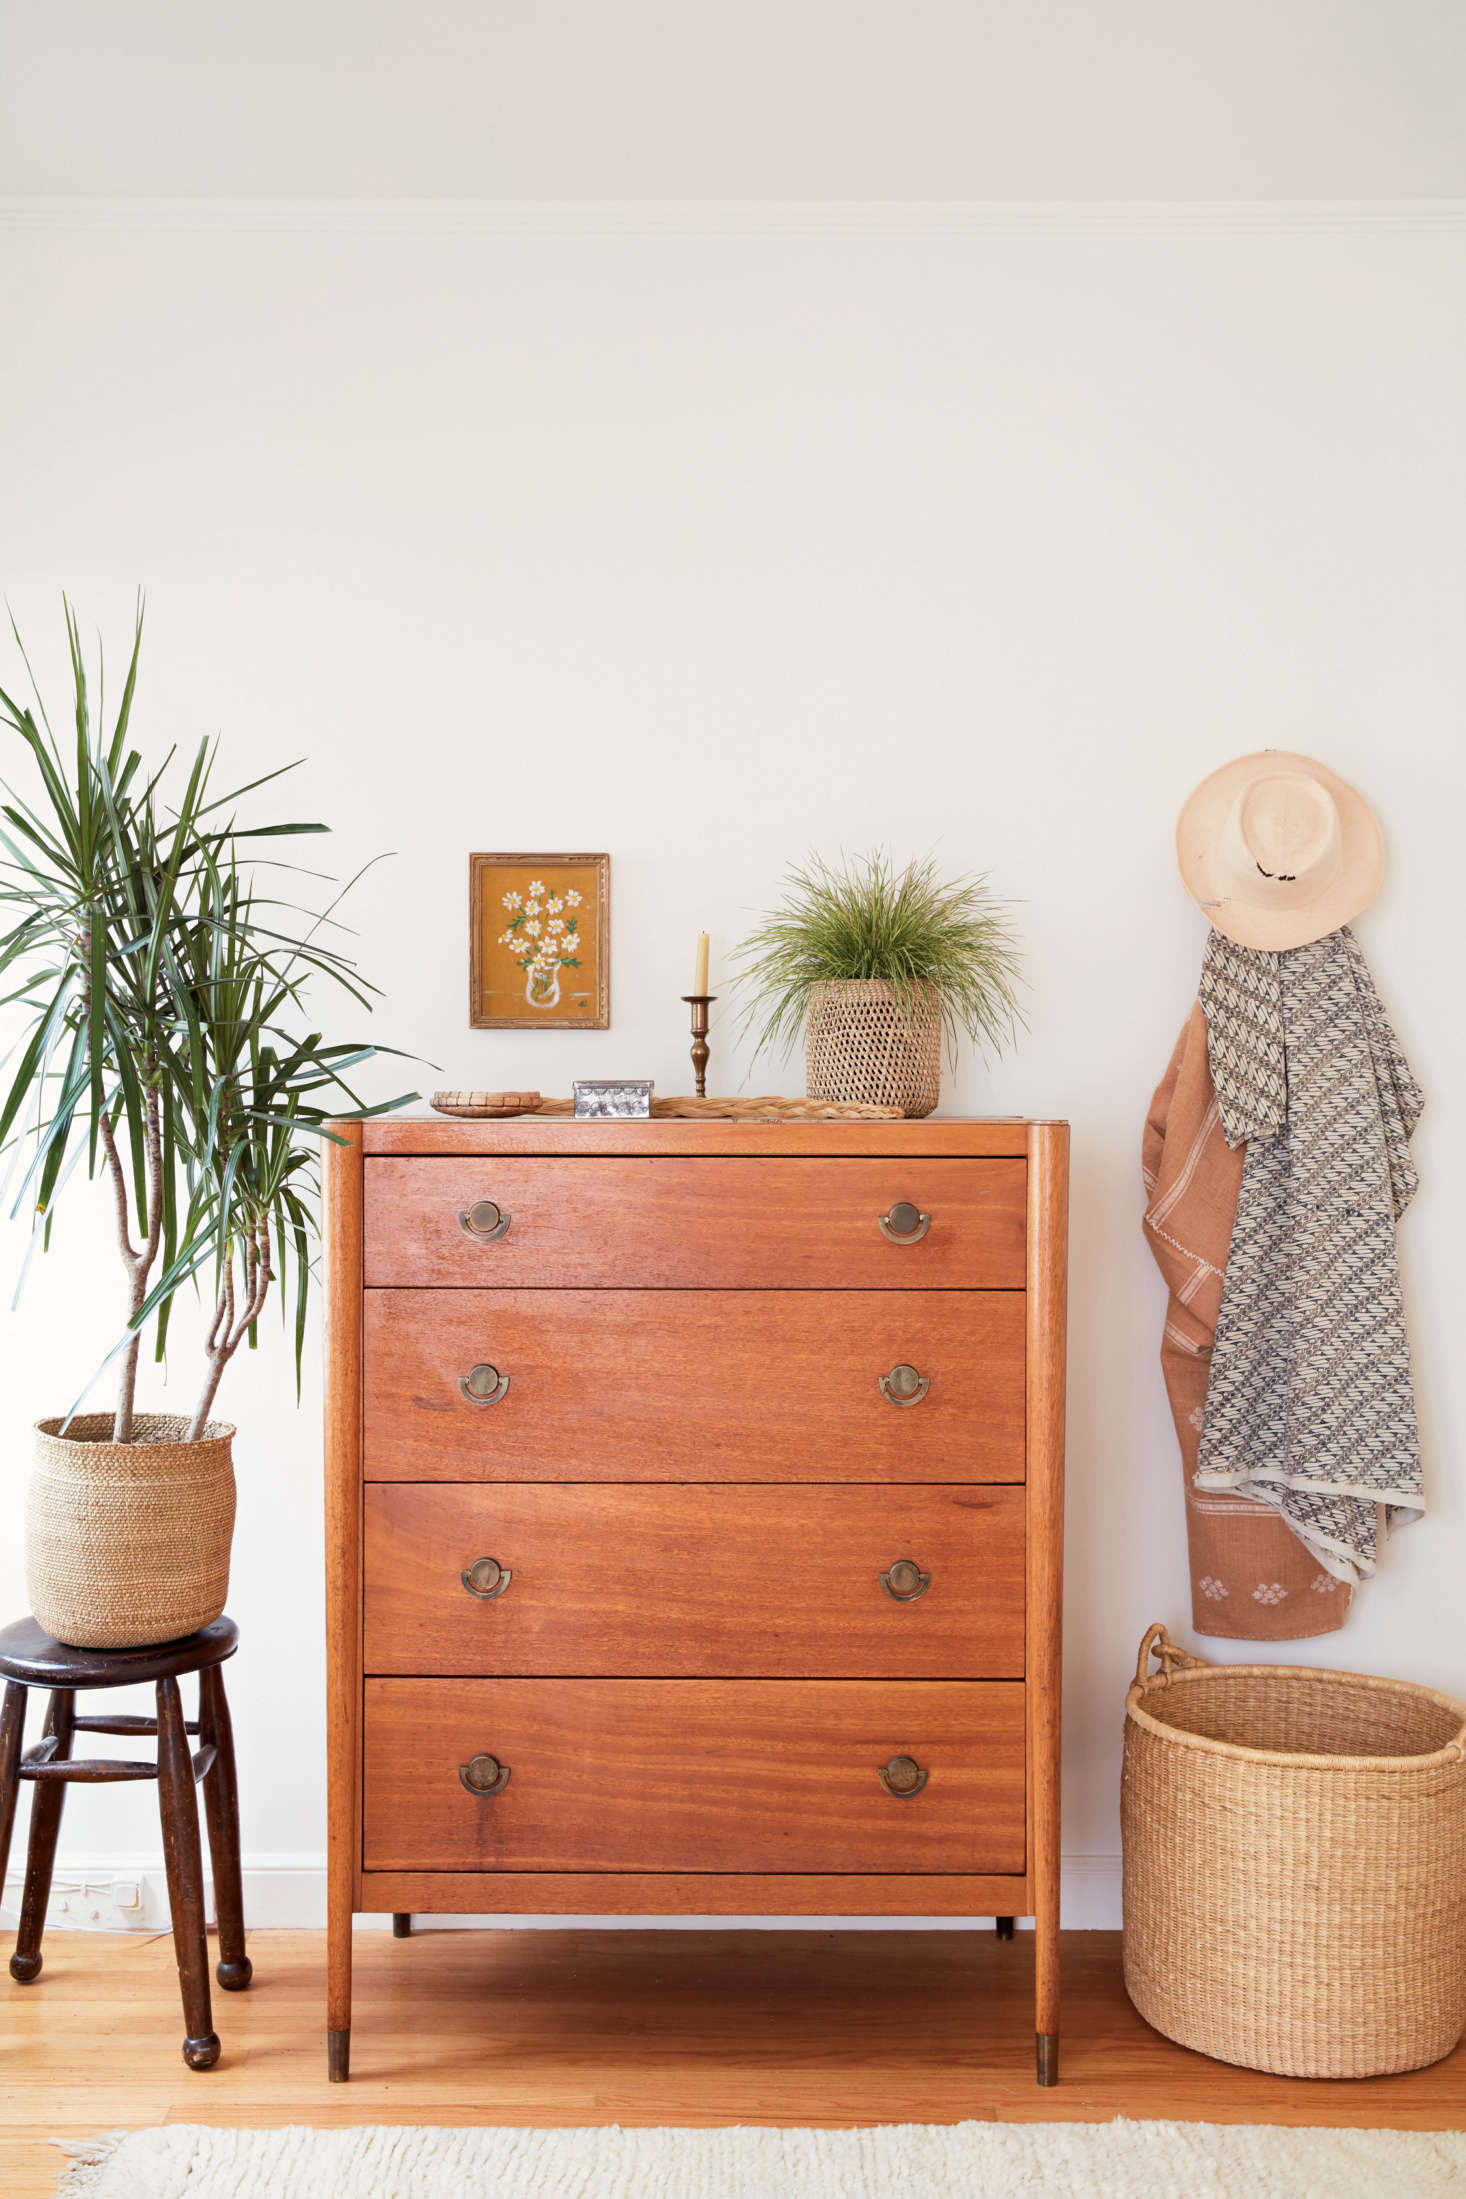 """From the section on Nesting: a meditation on how, and from where, to source furniture, like this dresser, recently found at a flea market. It's """"not in perfect condition, which in Serena's book is a plus,"""" the couple writes."""